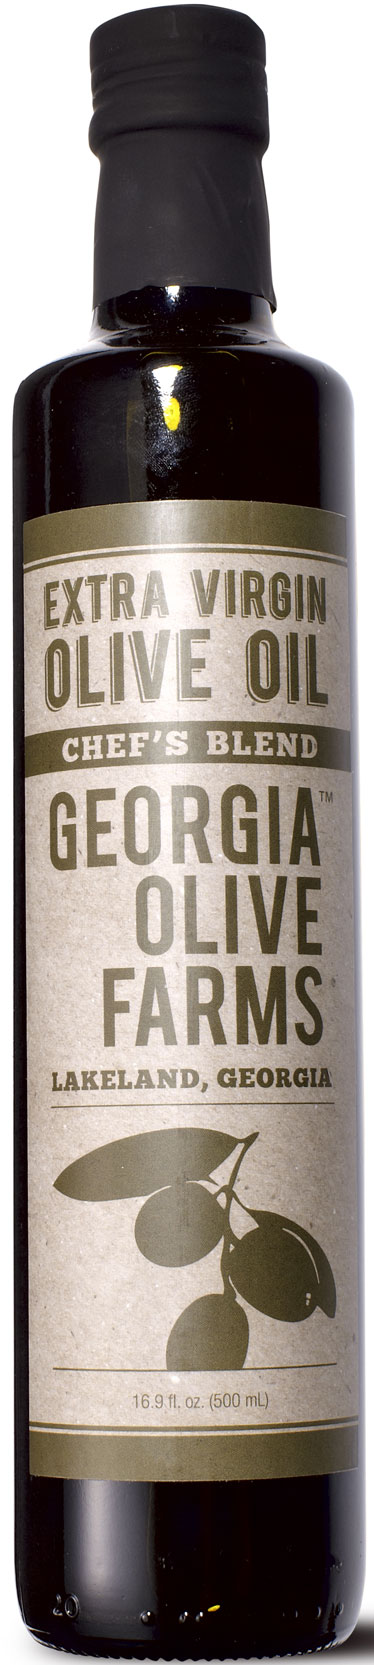 """""""Not only did the South rise again, it came back bearing the country's most spectacular olive oil"""" Georgia Olive Farms Extra-Virgin Olive Oil"""